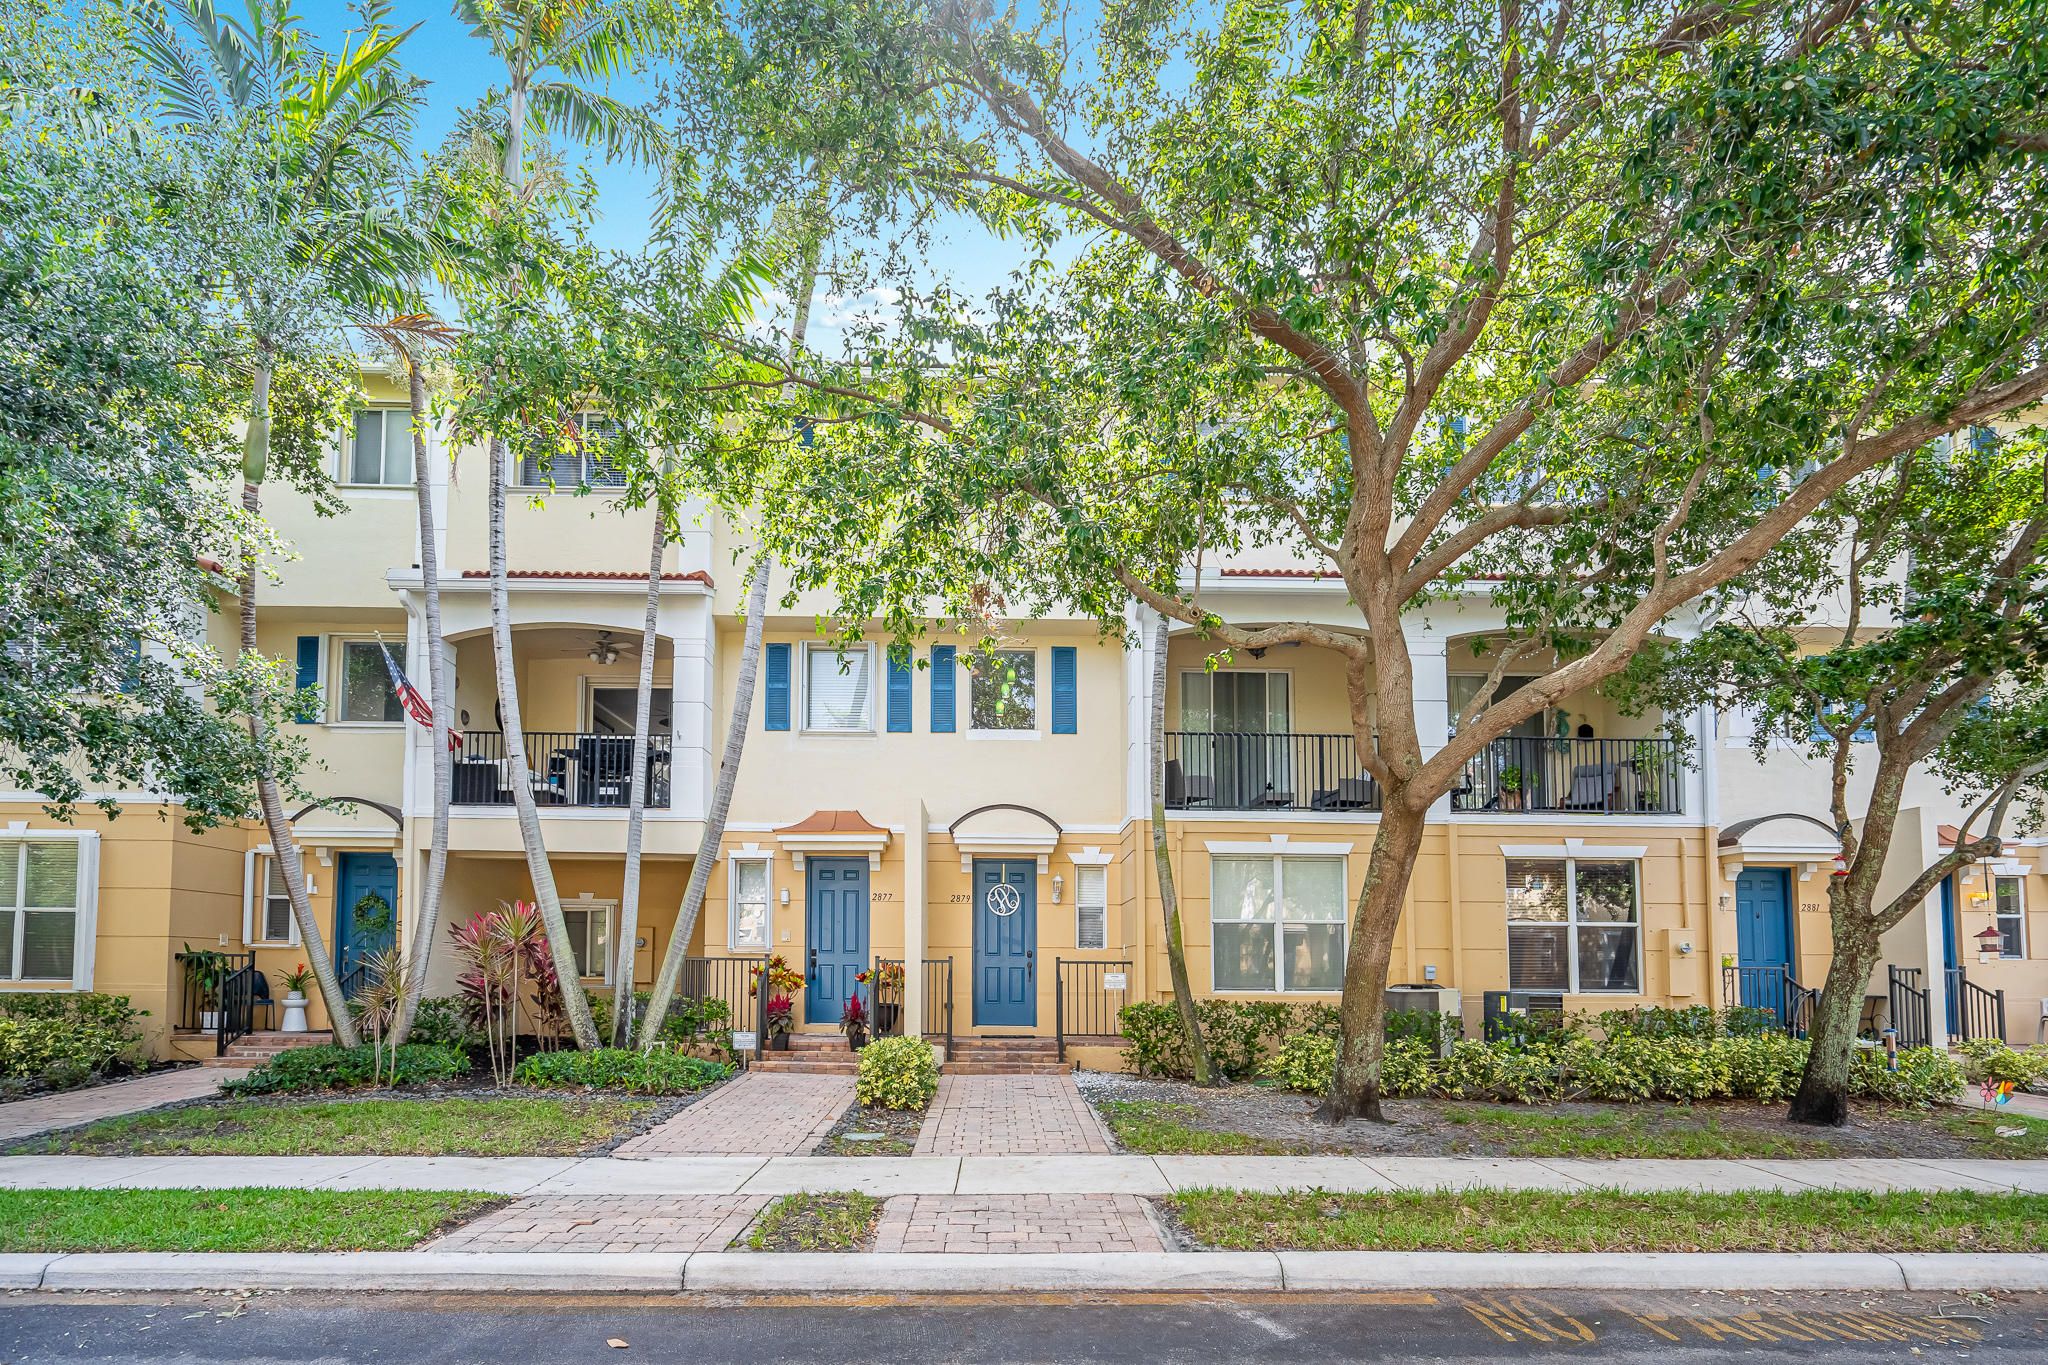 2879 S Oasis Drive  For Sale 10710897, FL